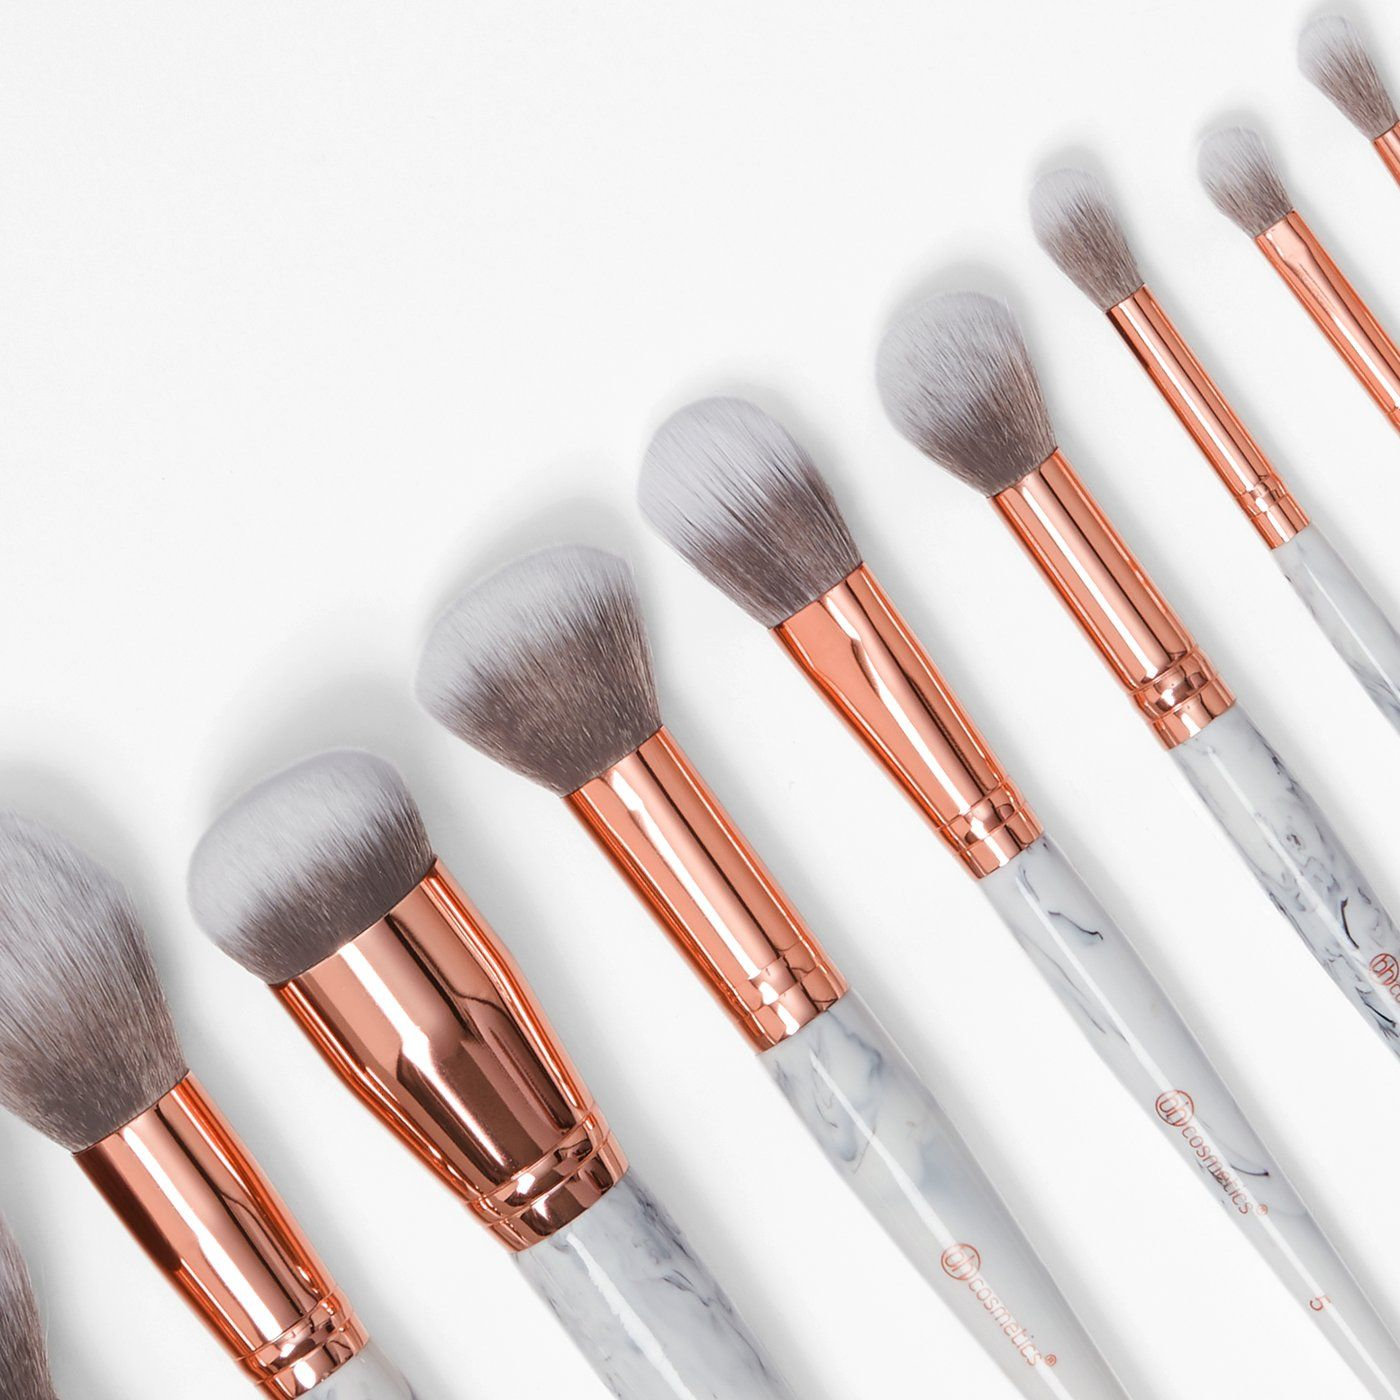 Marble Luxe How to clean makeup brushes, Makeup brushes